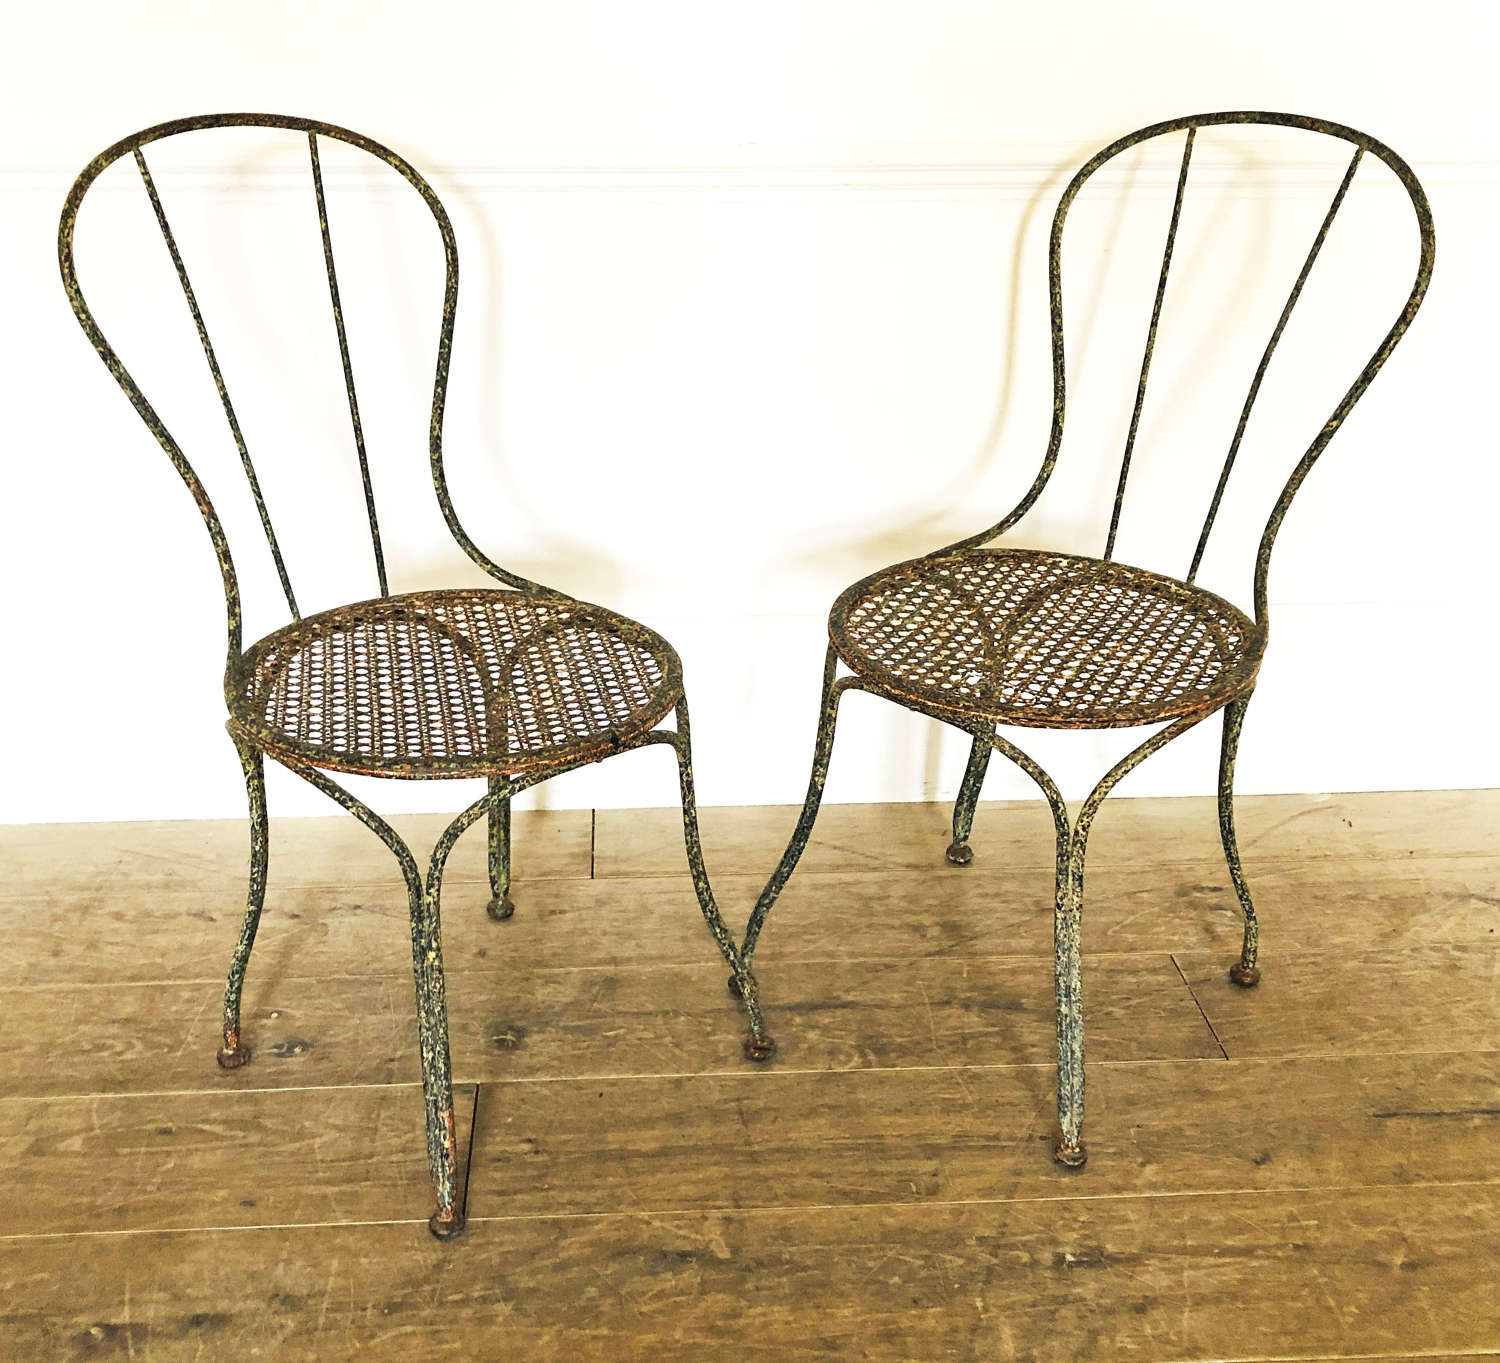 Pair of French 19th century Iron Chairs - circa 1890